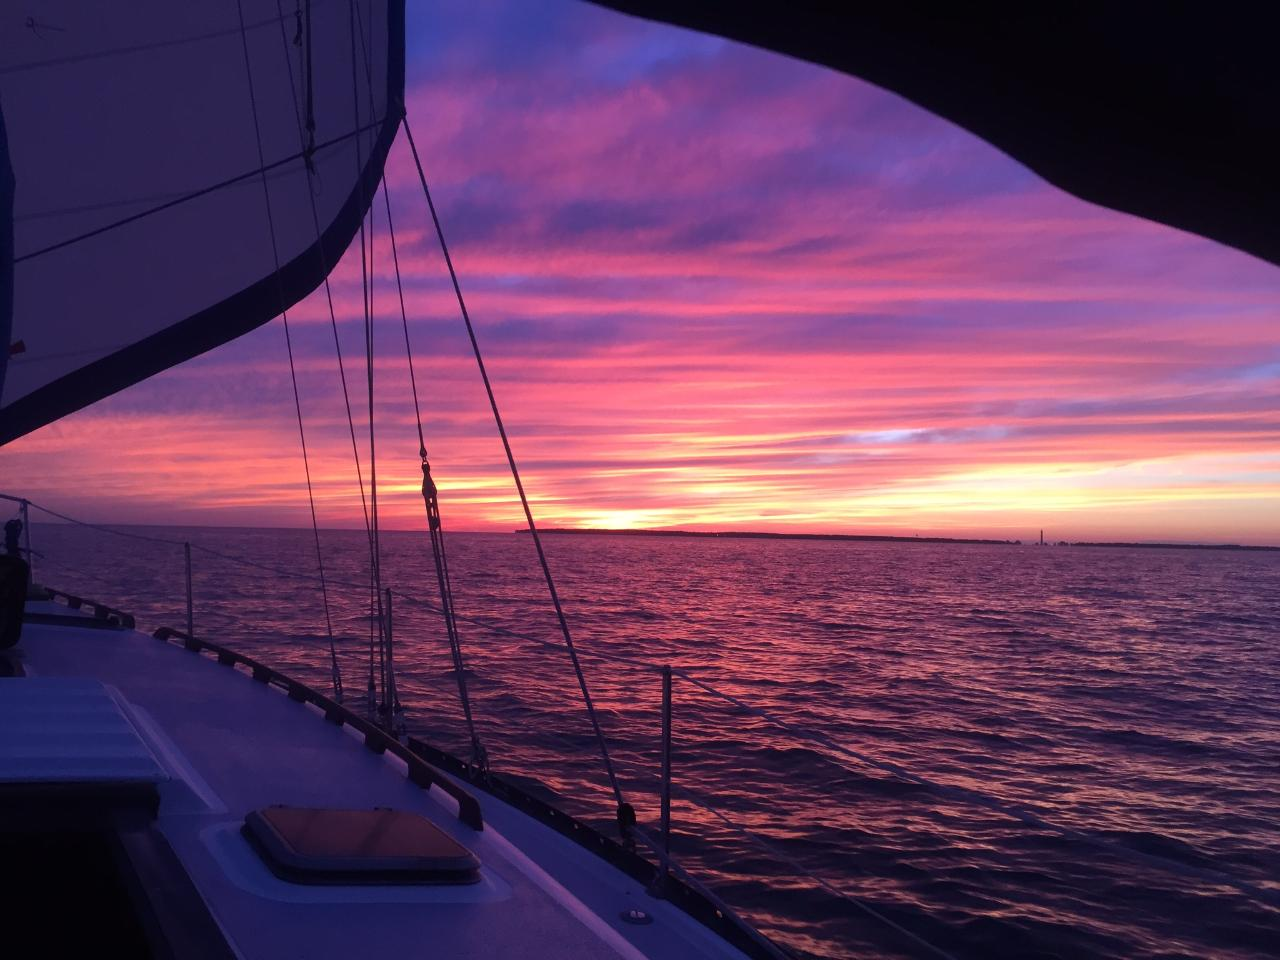 Sunset Sail (Holiday Weekend)